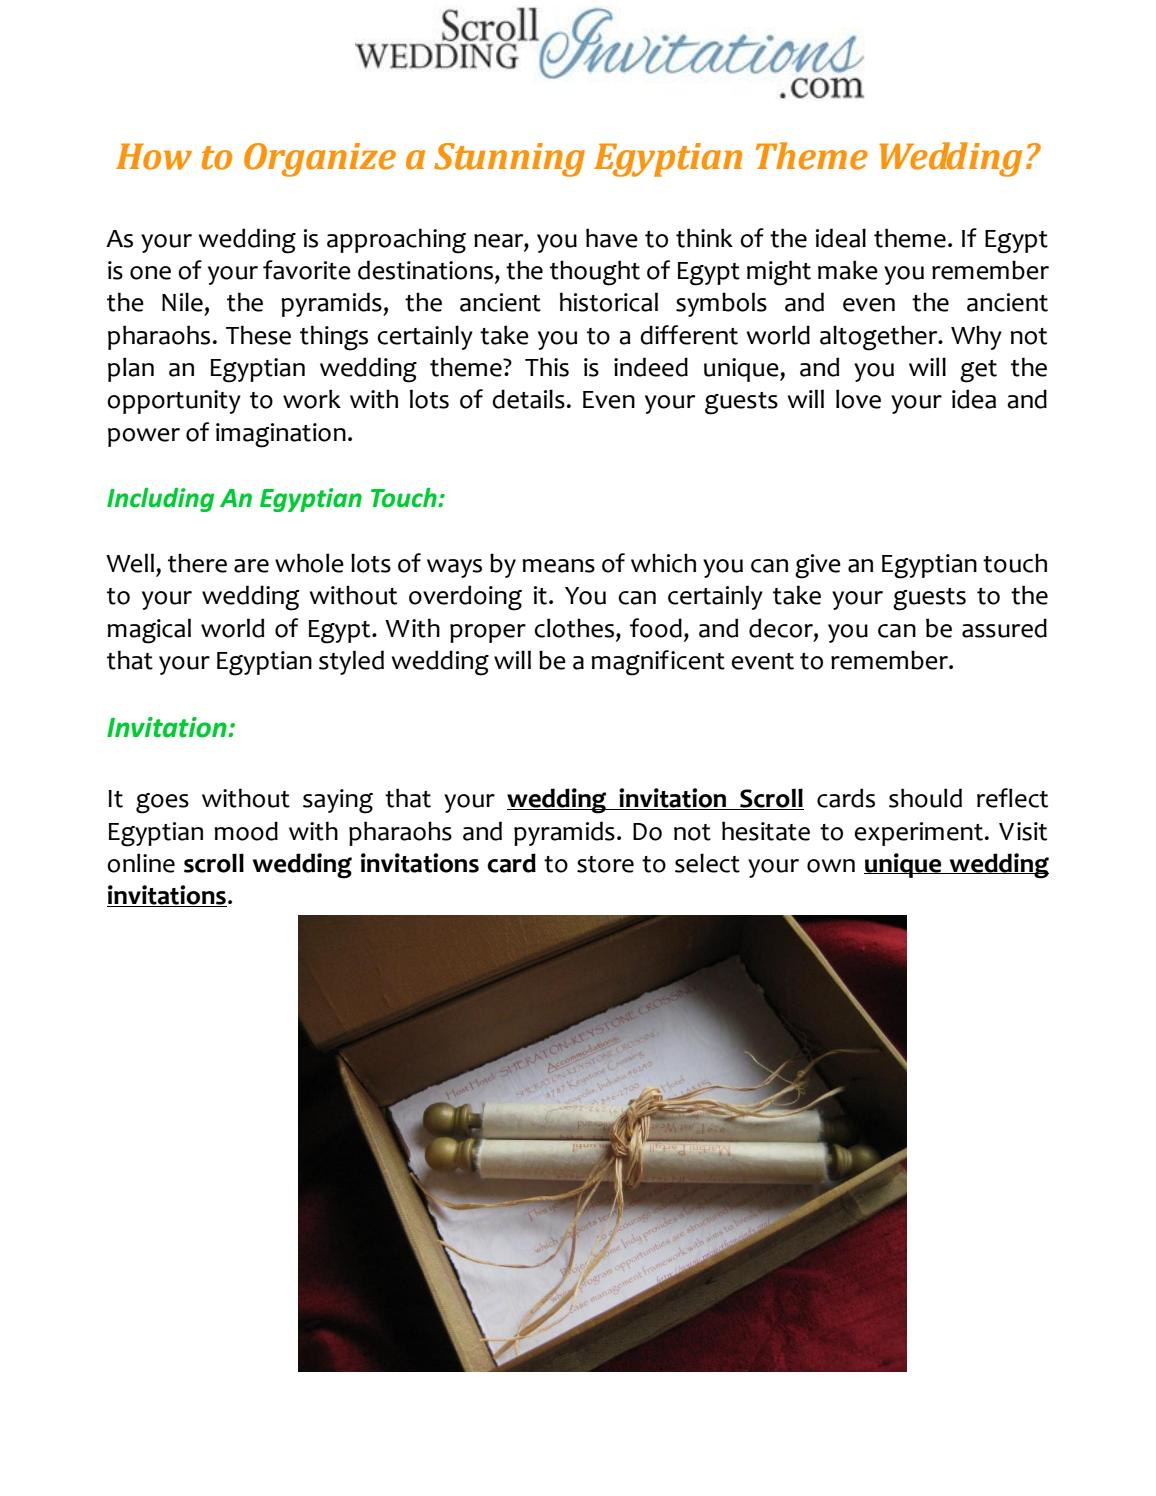 How to Organize a Stunning Egyptian Theme Wedding by Scroll Wedding ...